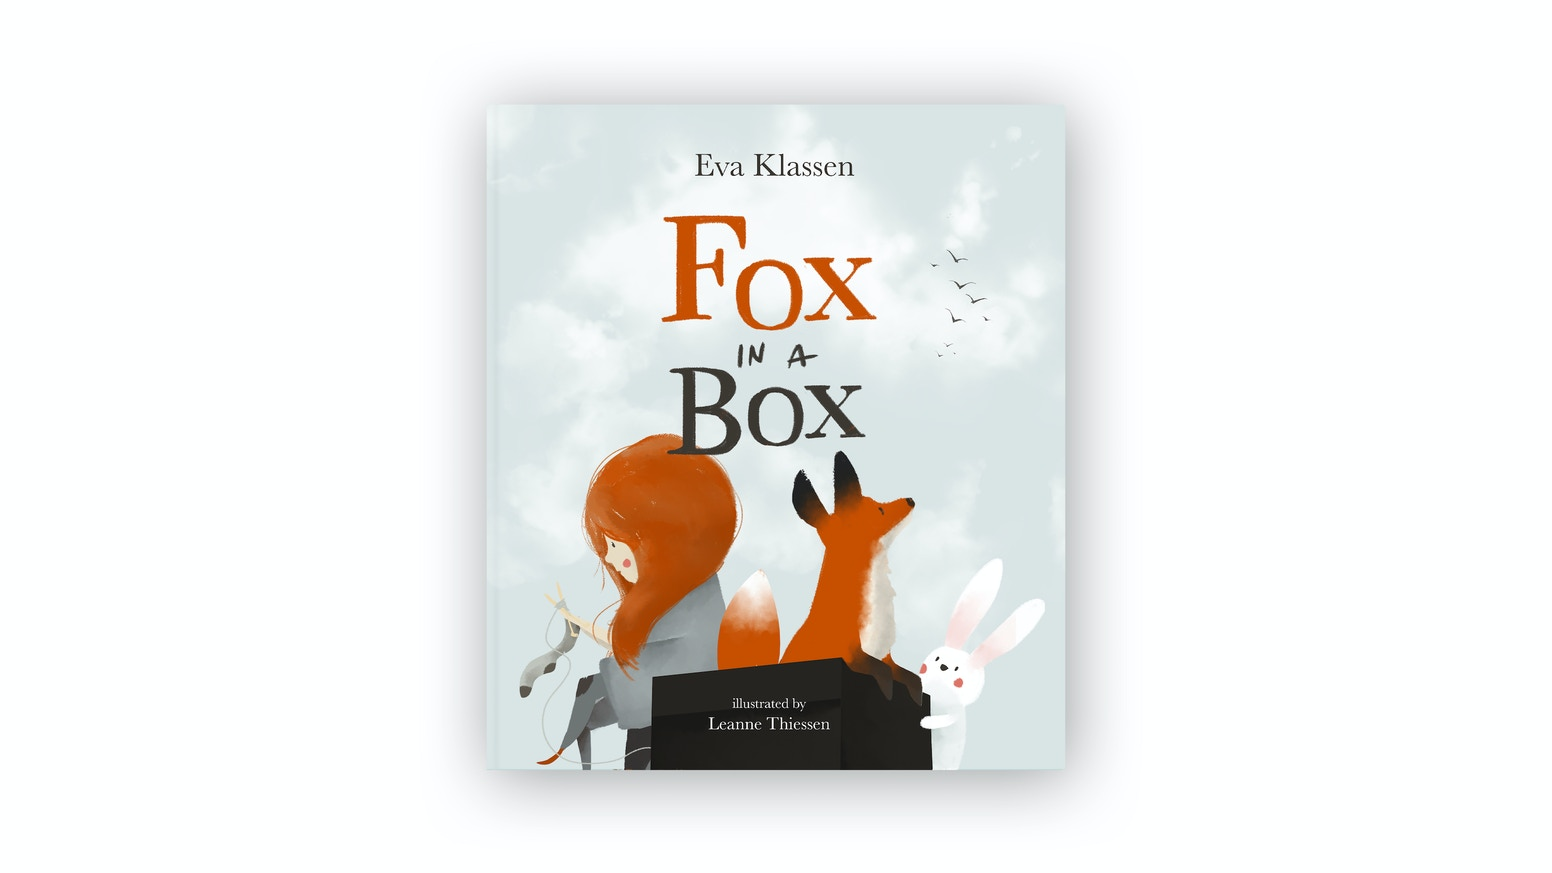 When getting into his box is getting quite tough, Fox discovers he has more than enough!